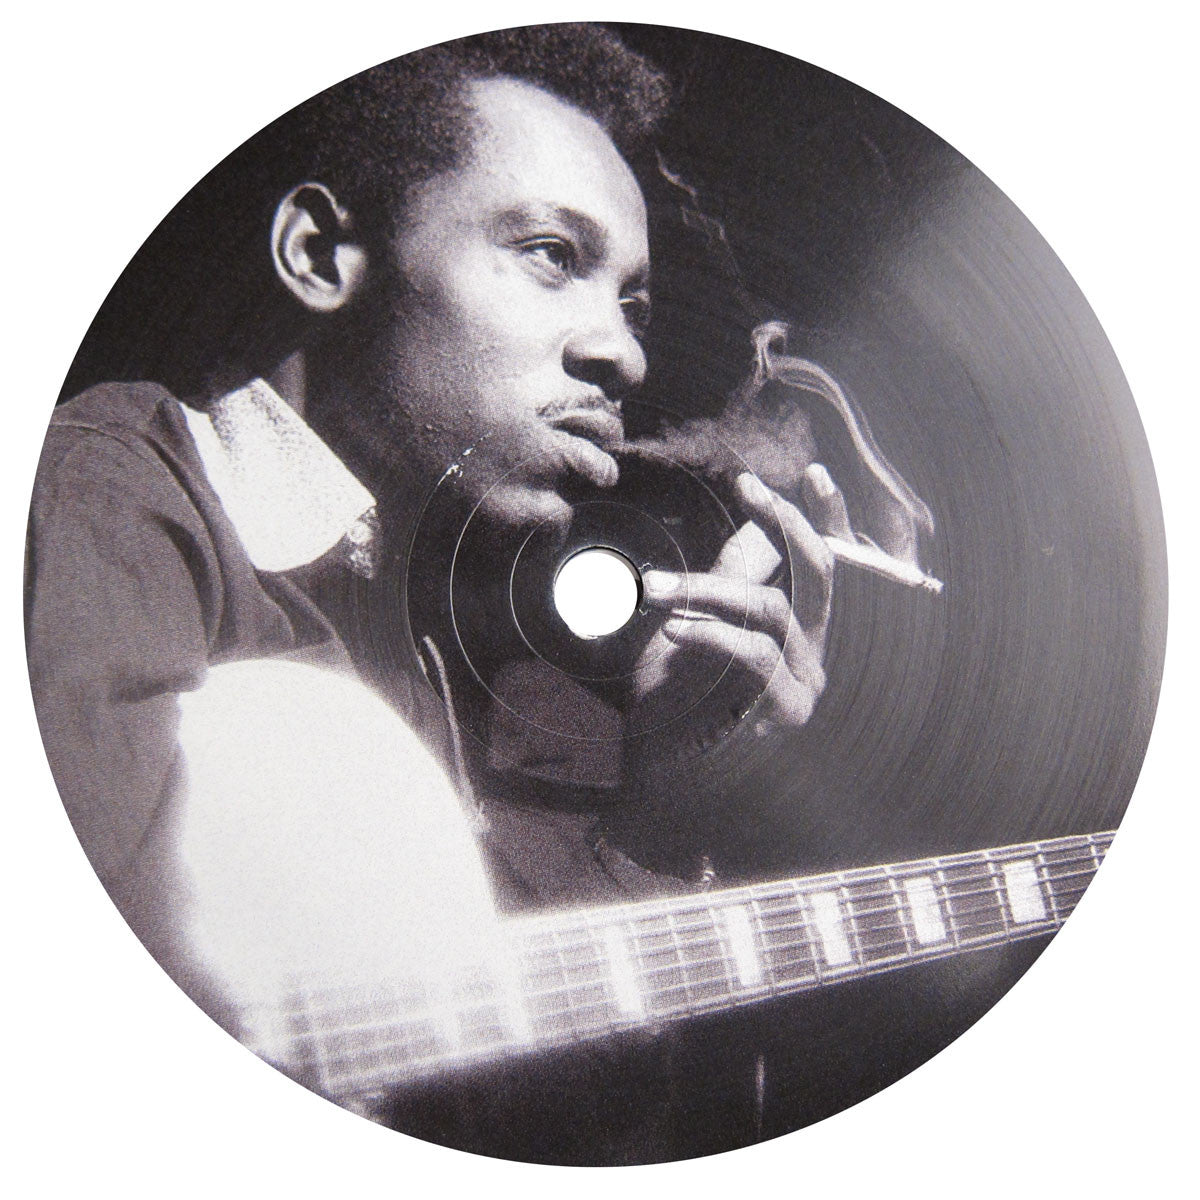 Kon: Spirit Of The Party (George Benson) Vinyl 12""